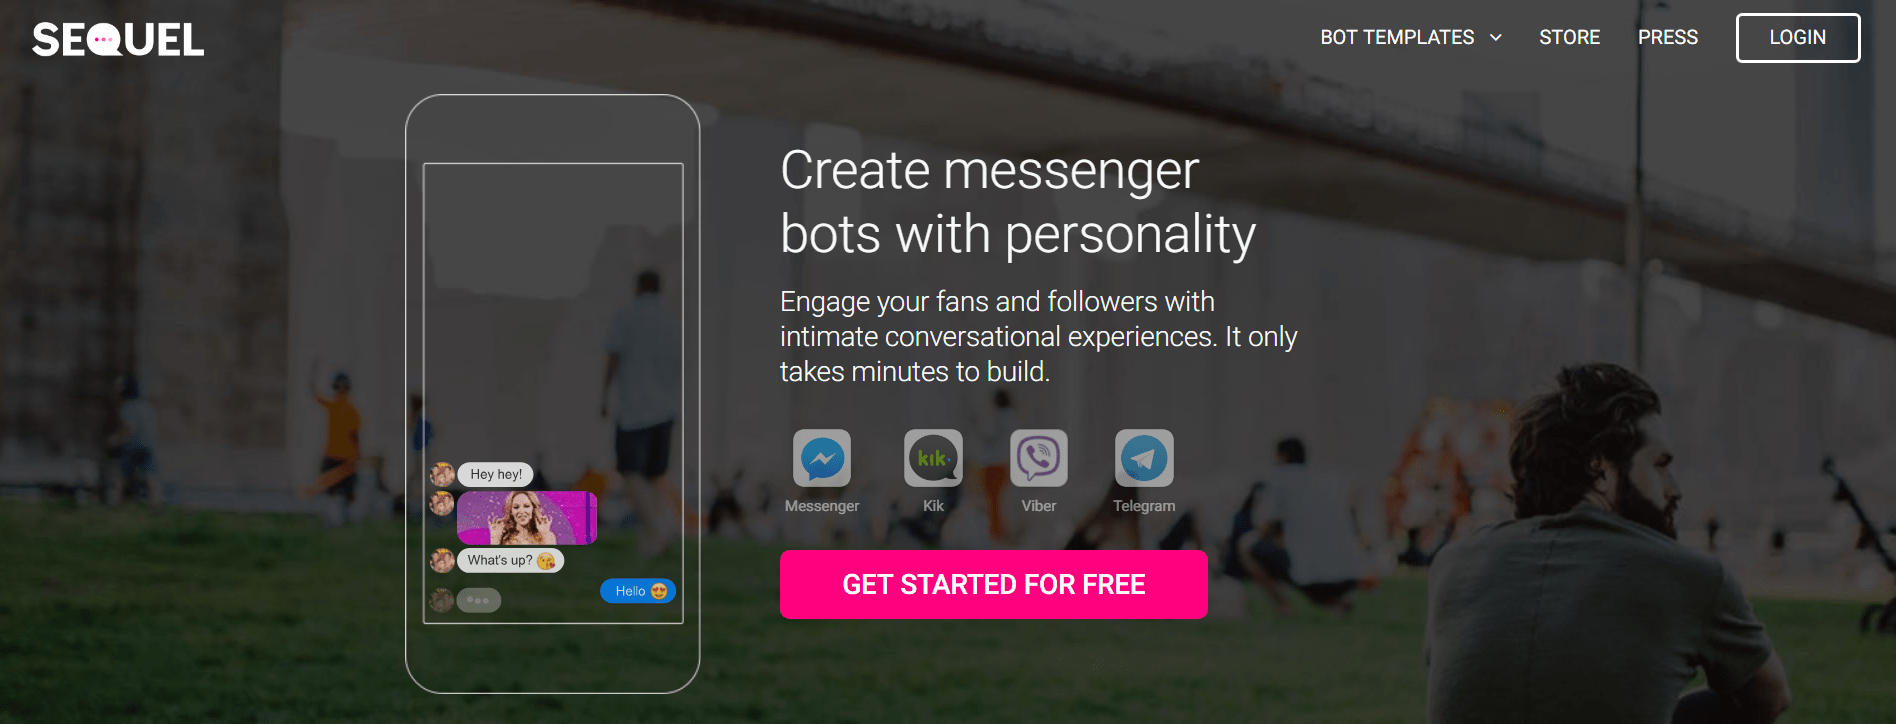 facebook messenger marketing - Sequel landing page